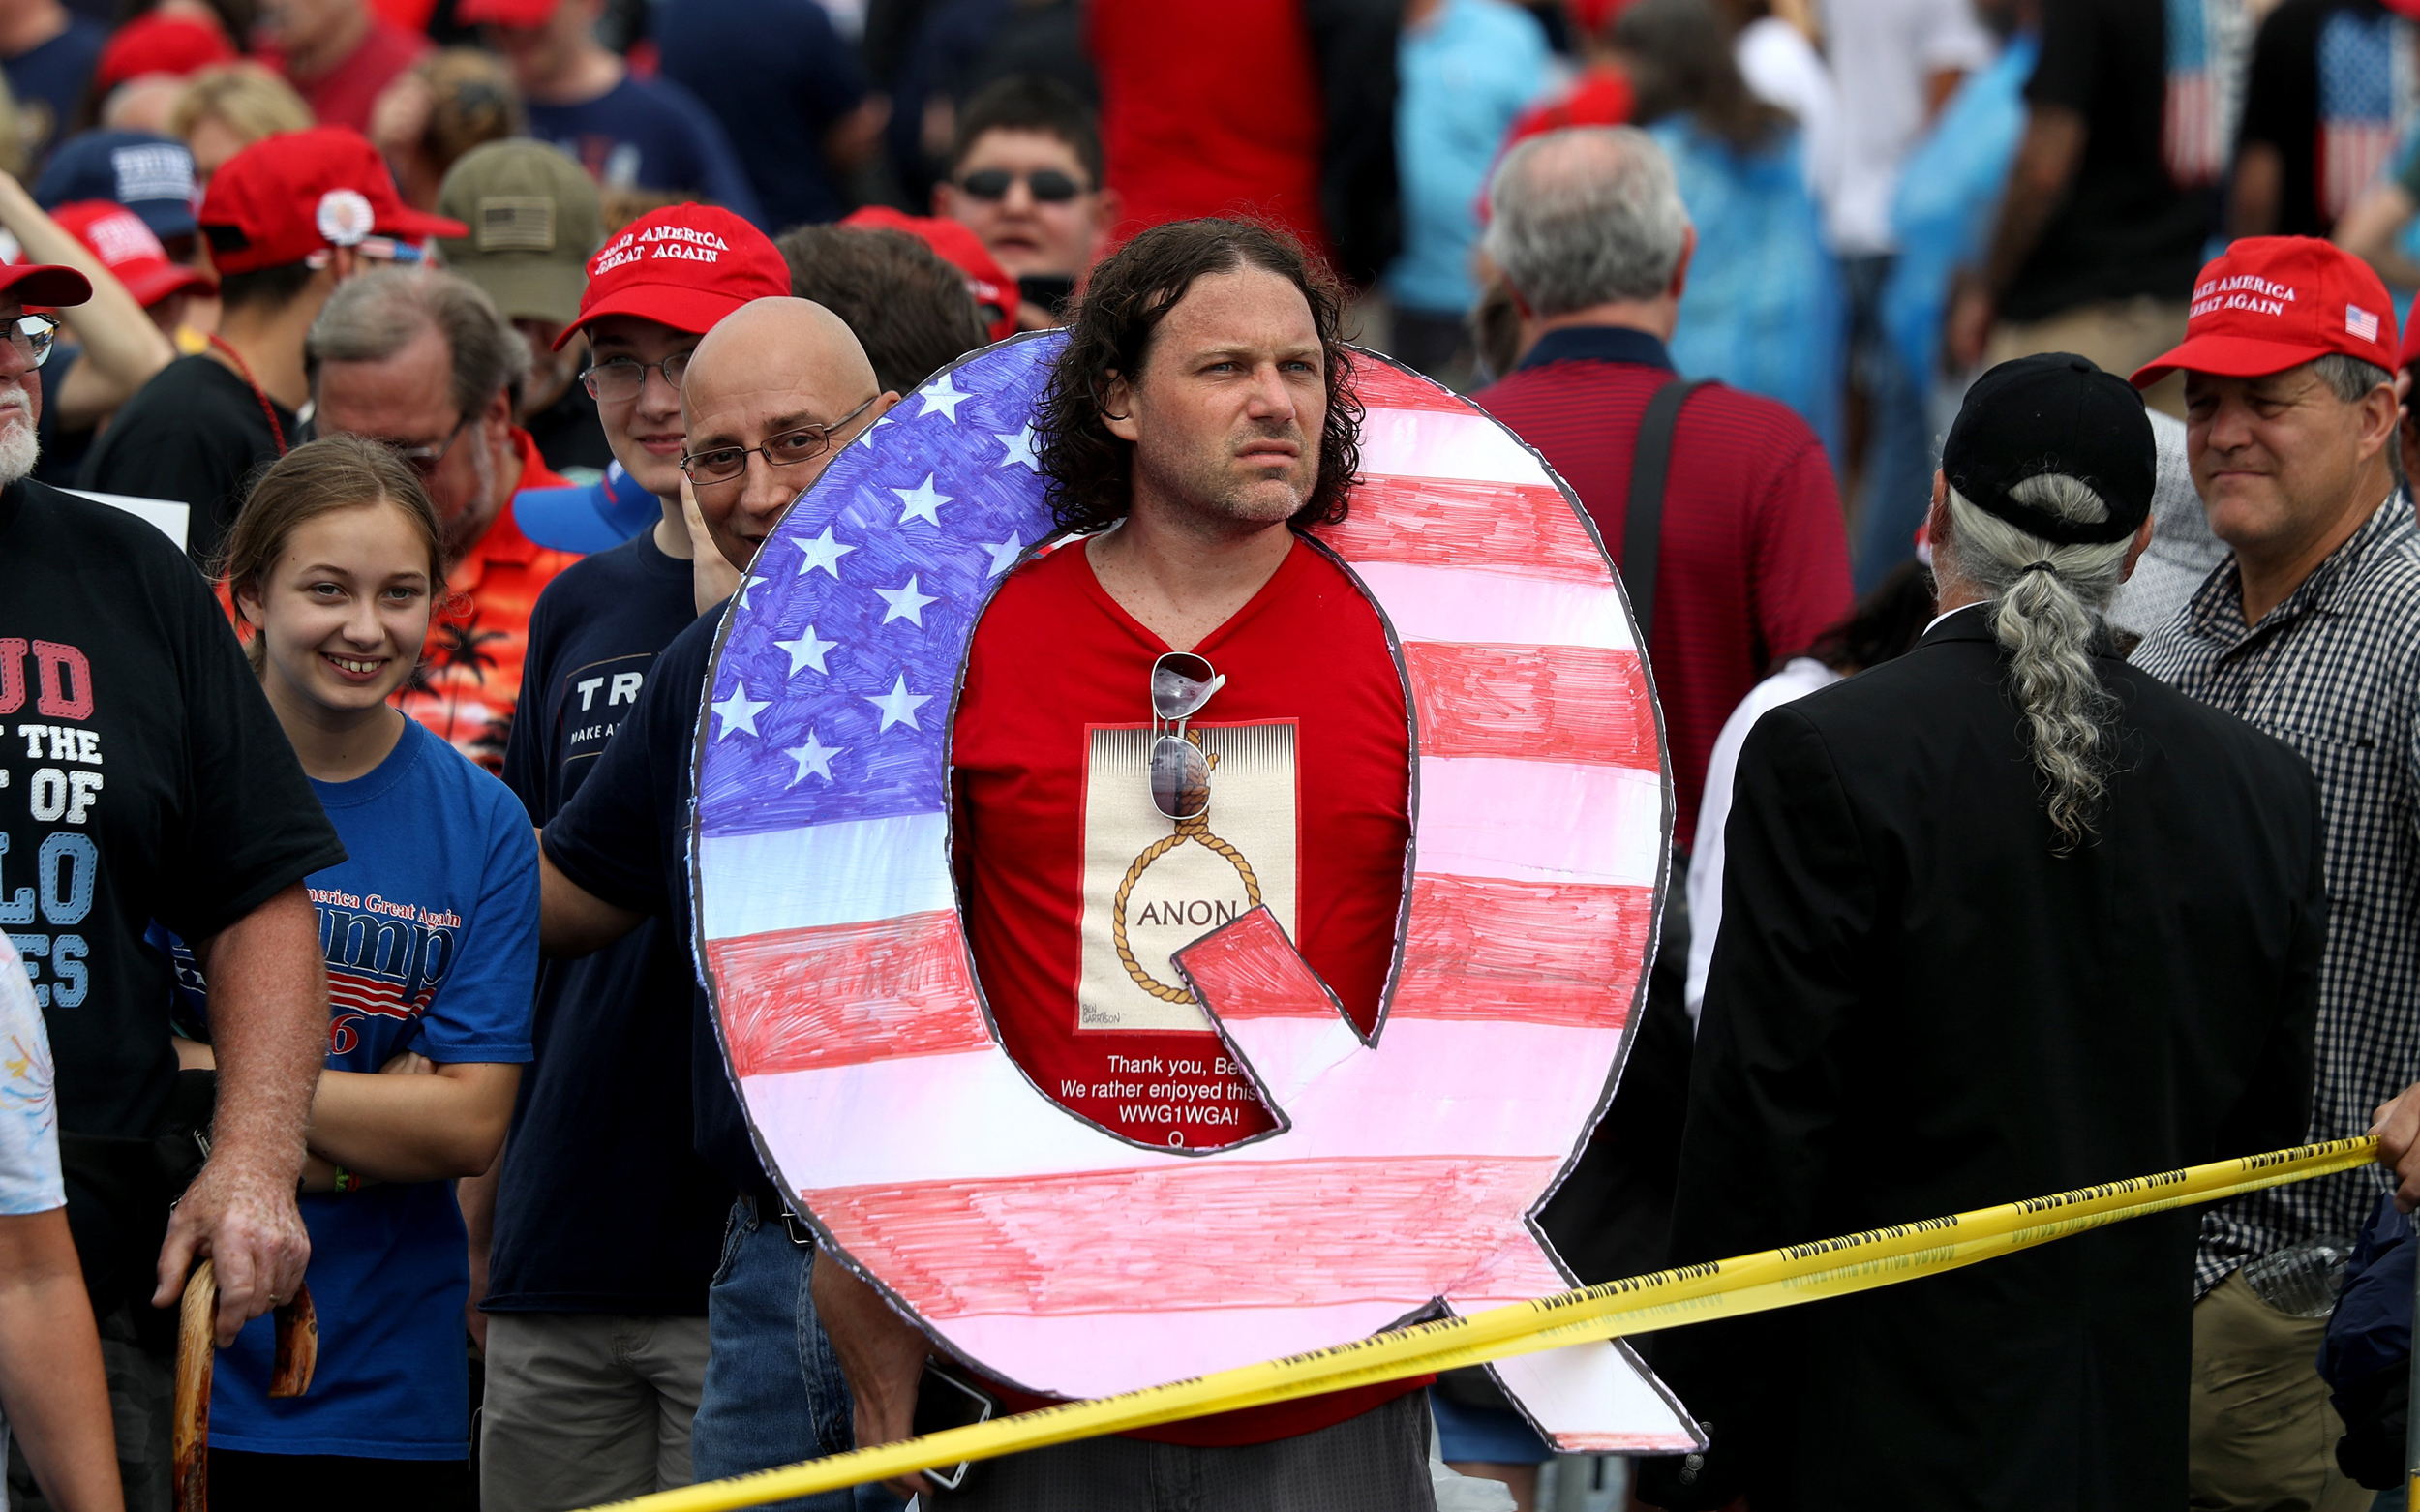 How three conspiracy theorists took 'Q' and sparked Qanon